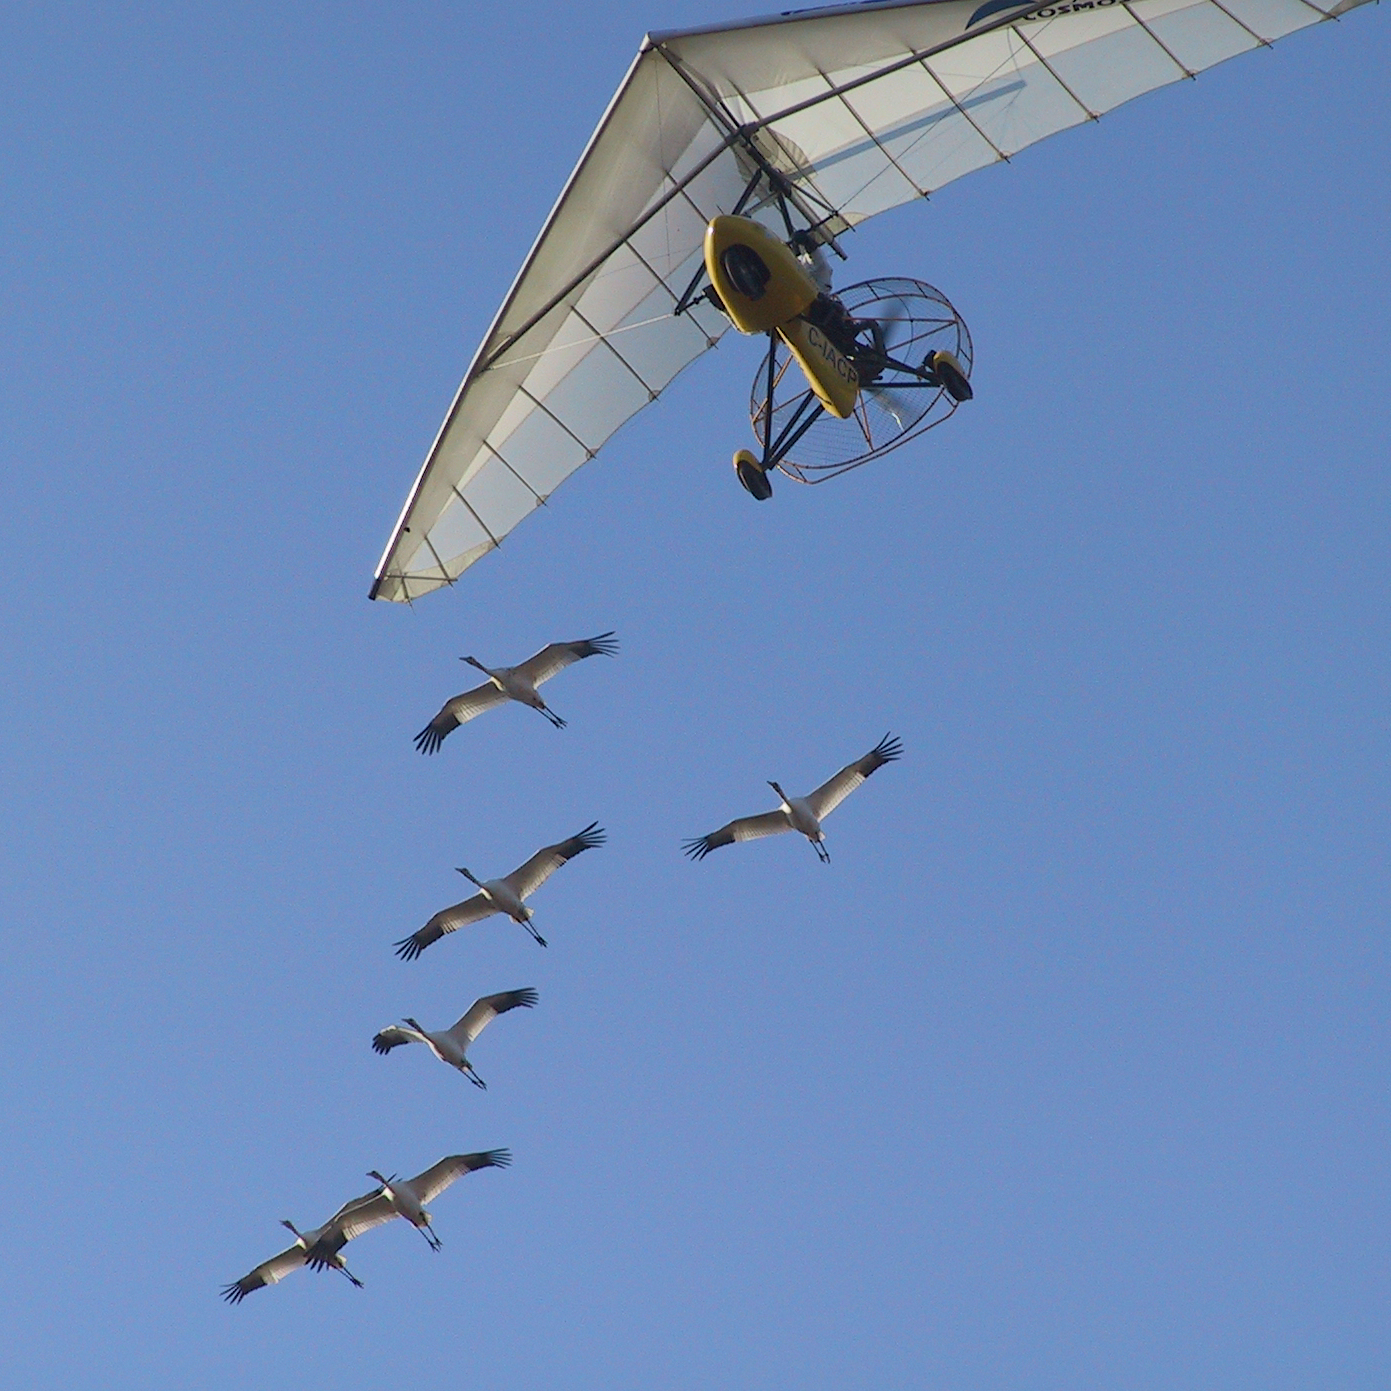 All the whooping cranes studied by the University of Maryland team received the same initial flight training as chicks, following an Operation Migration ultralight from Wisconsin to Florida in the fall. The Science study looked at data on their subsequent migrations -- without the plane -- beginning with the following spring.